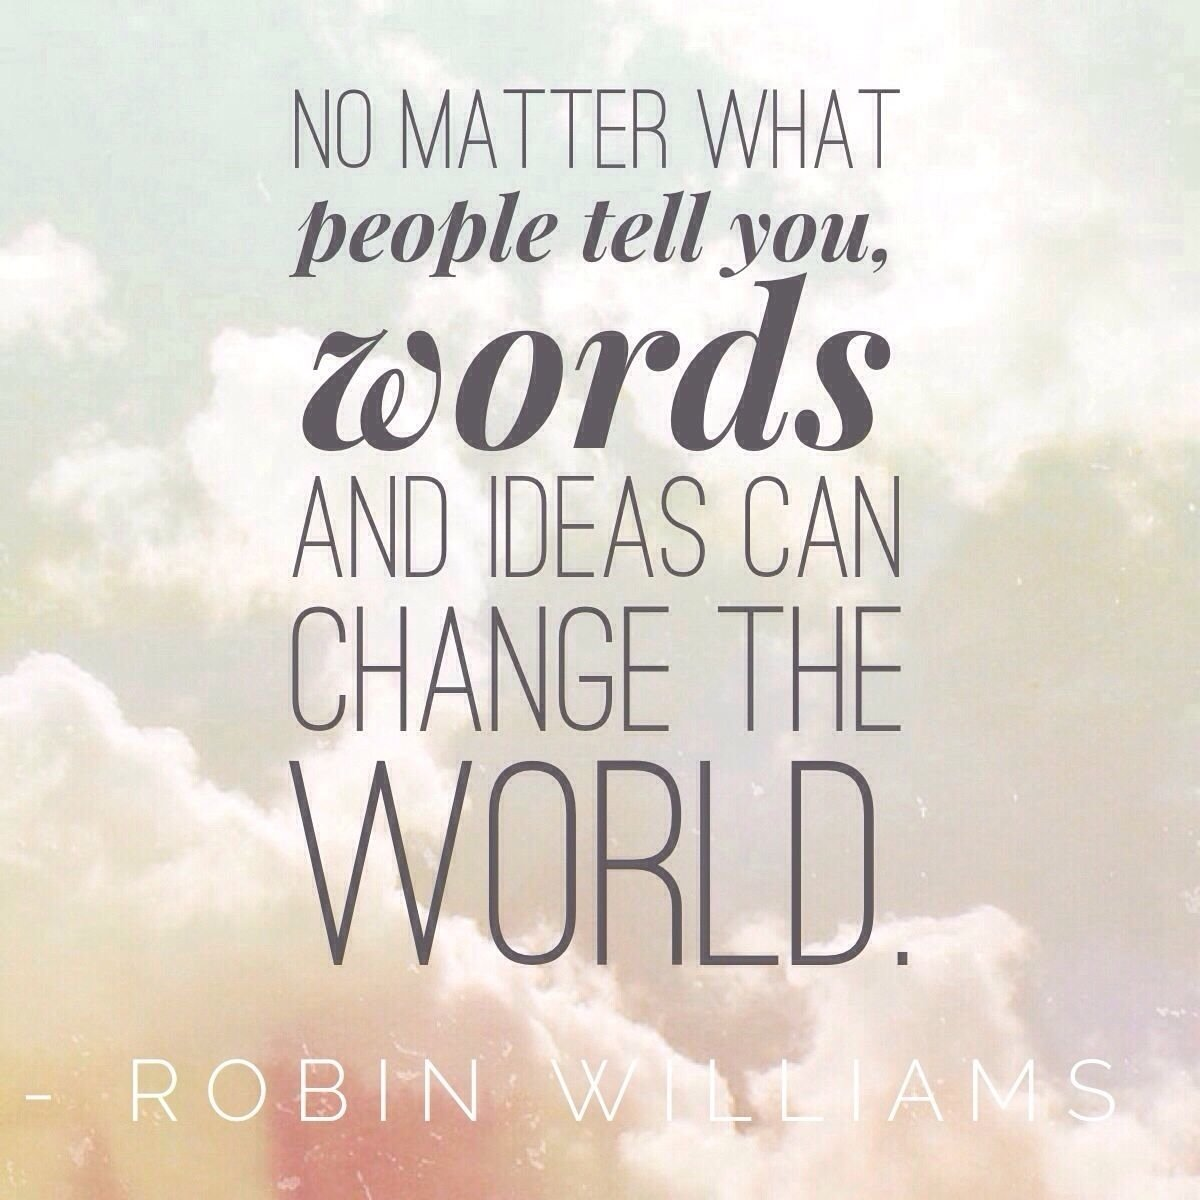 10 Lovely Words And Ideas Can Change The World no matter what people tell you words and ideas can change the 2021